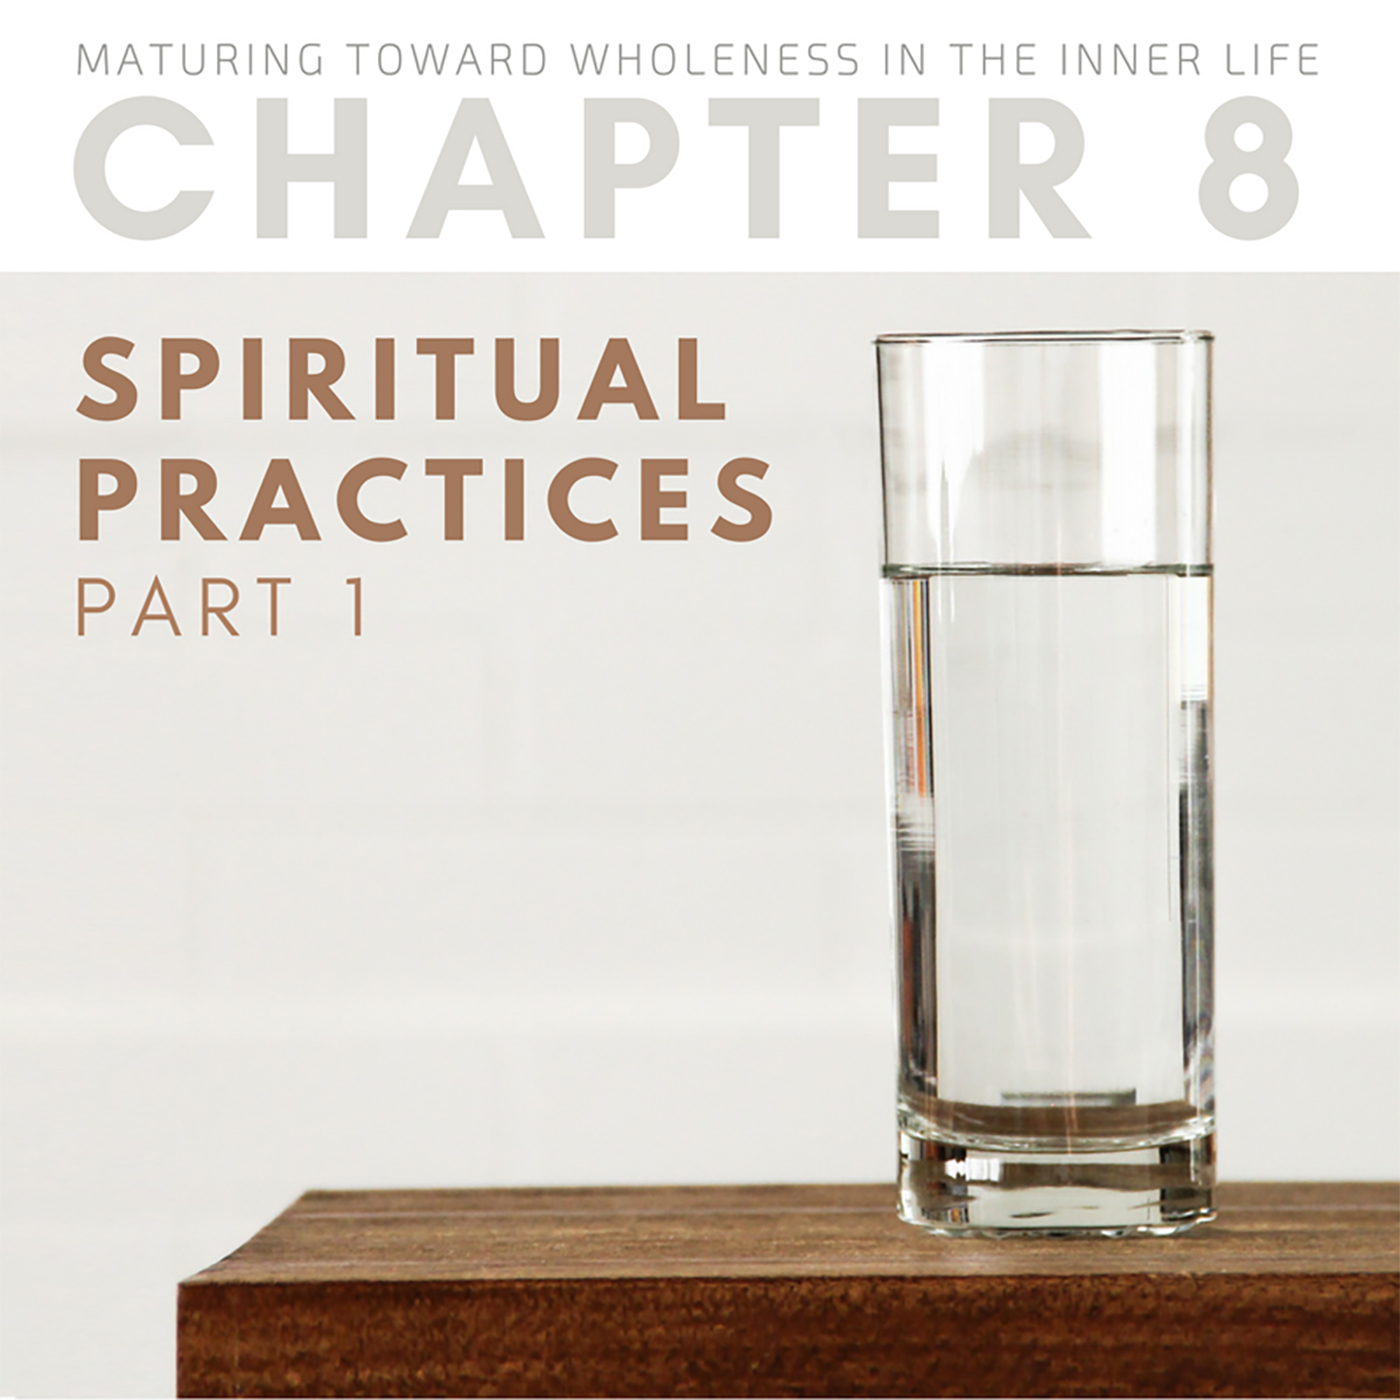 Spiritual Practices (1 of 2)